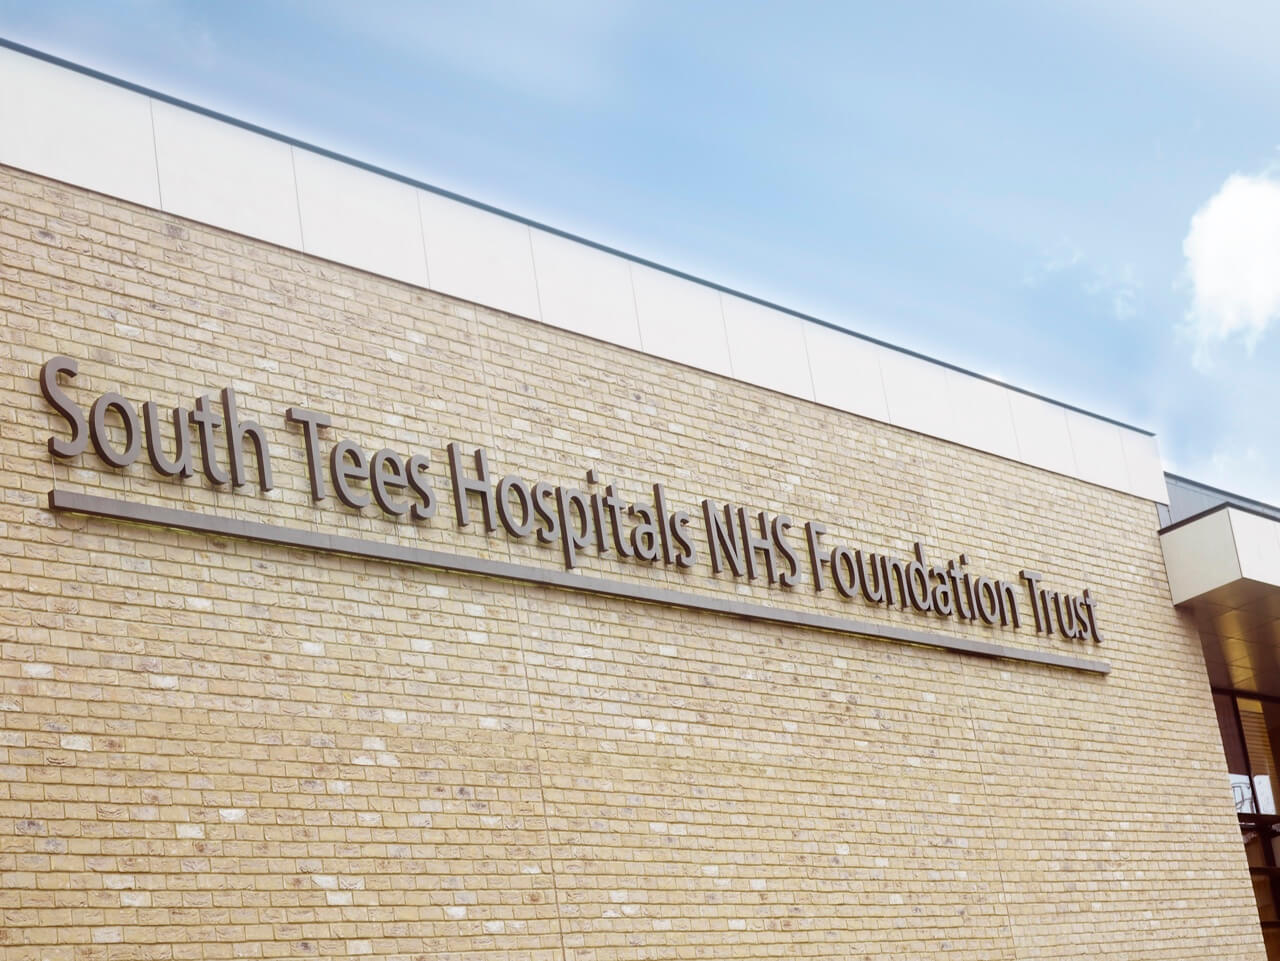 The external main sign showing the name South Tees Hospital NHS Foundation Trust